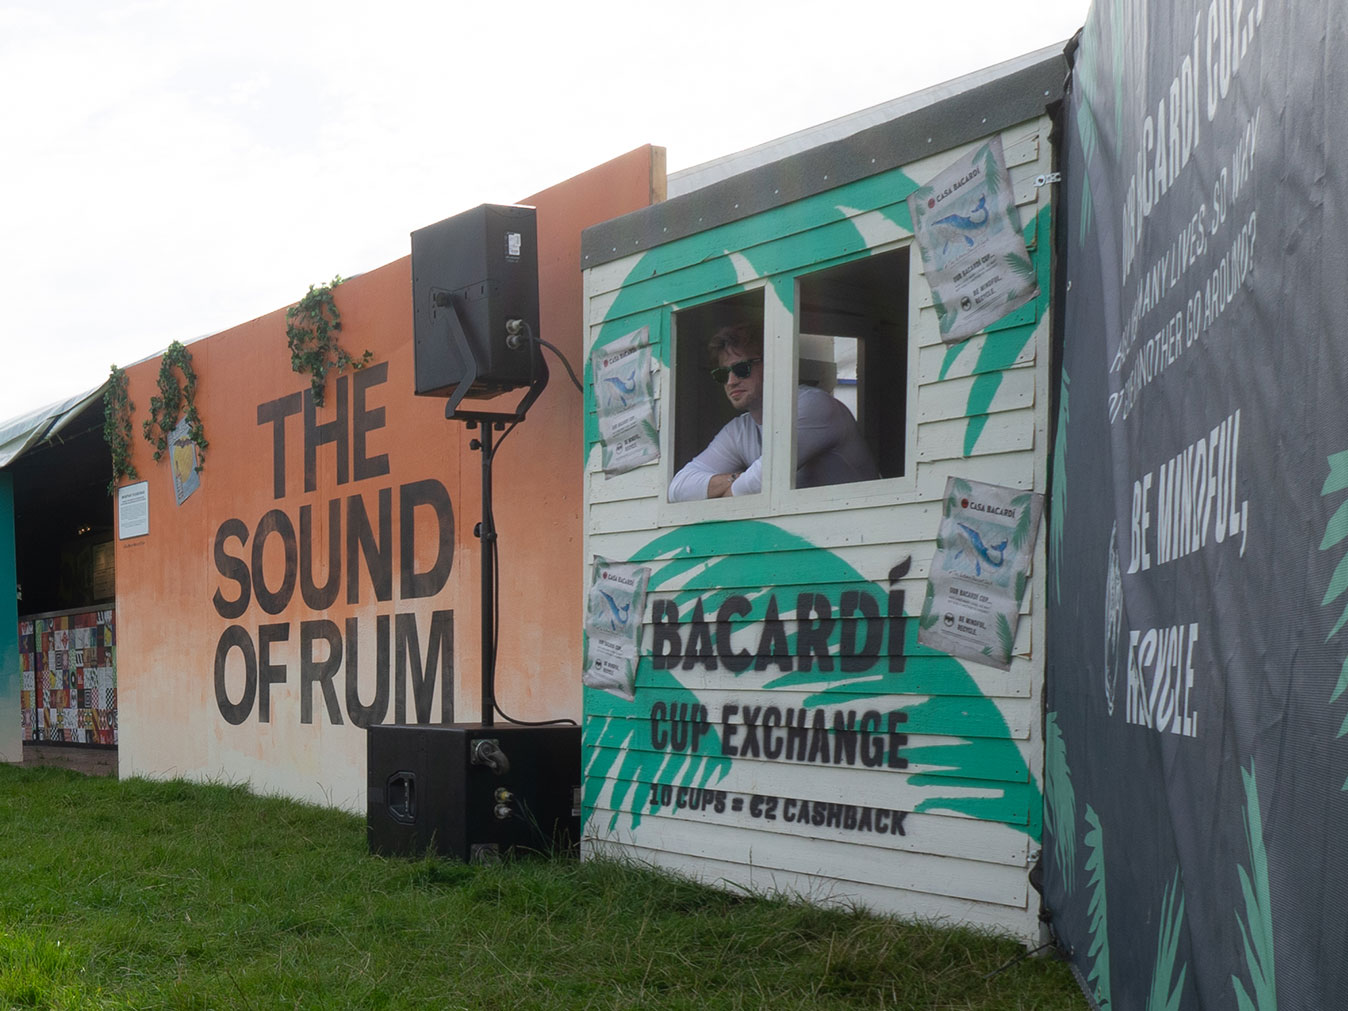 Casa Barcardi experiential events plastic cup recycling at festivals